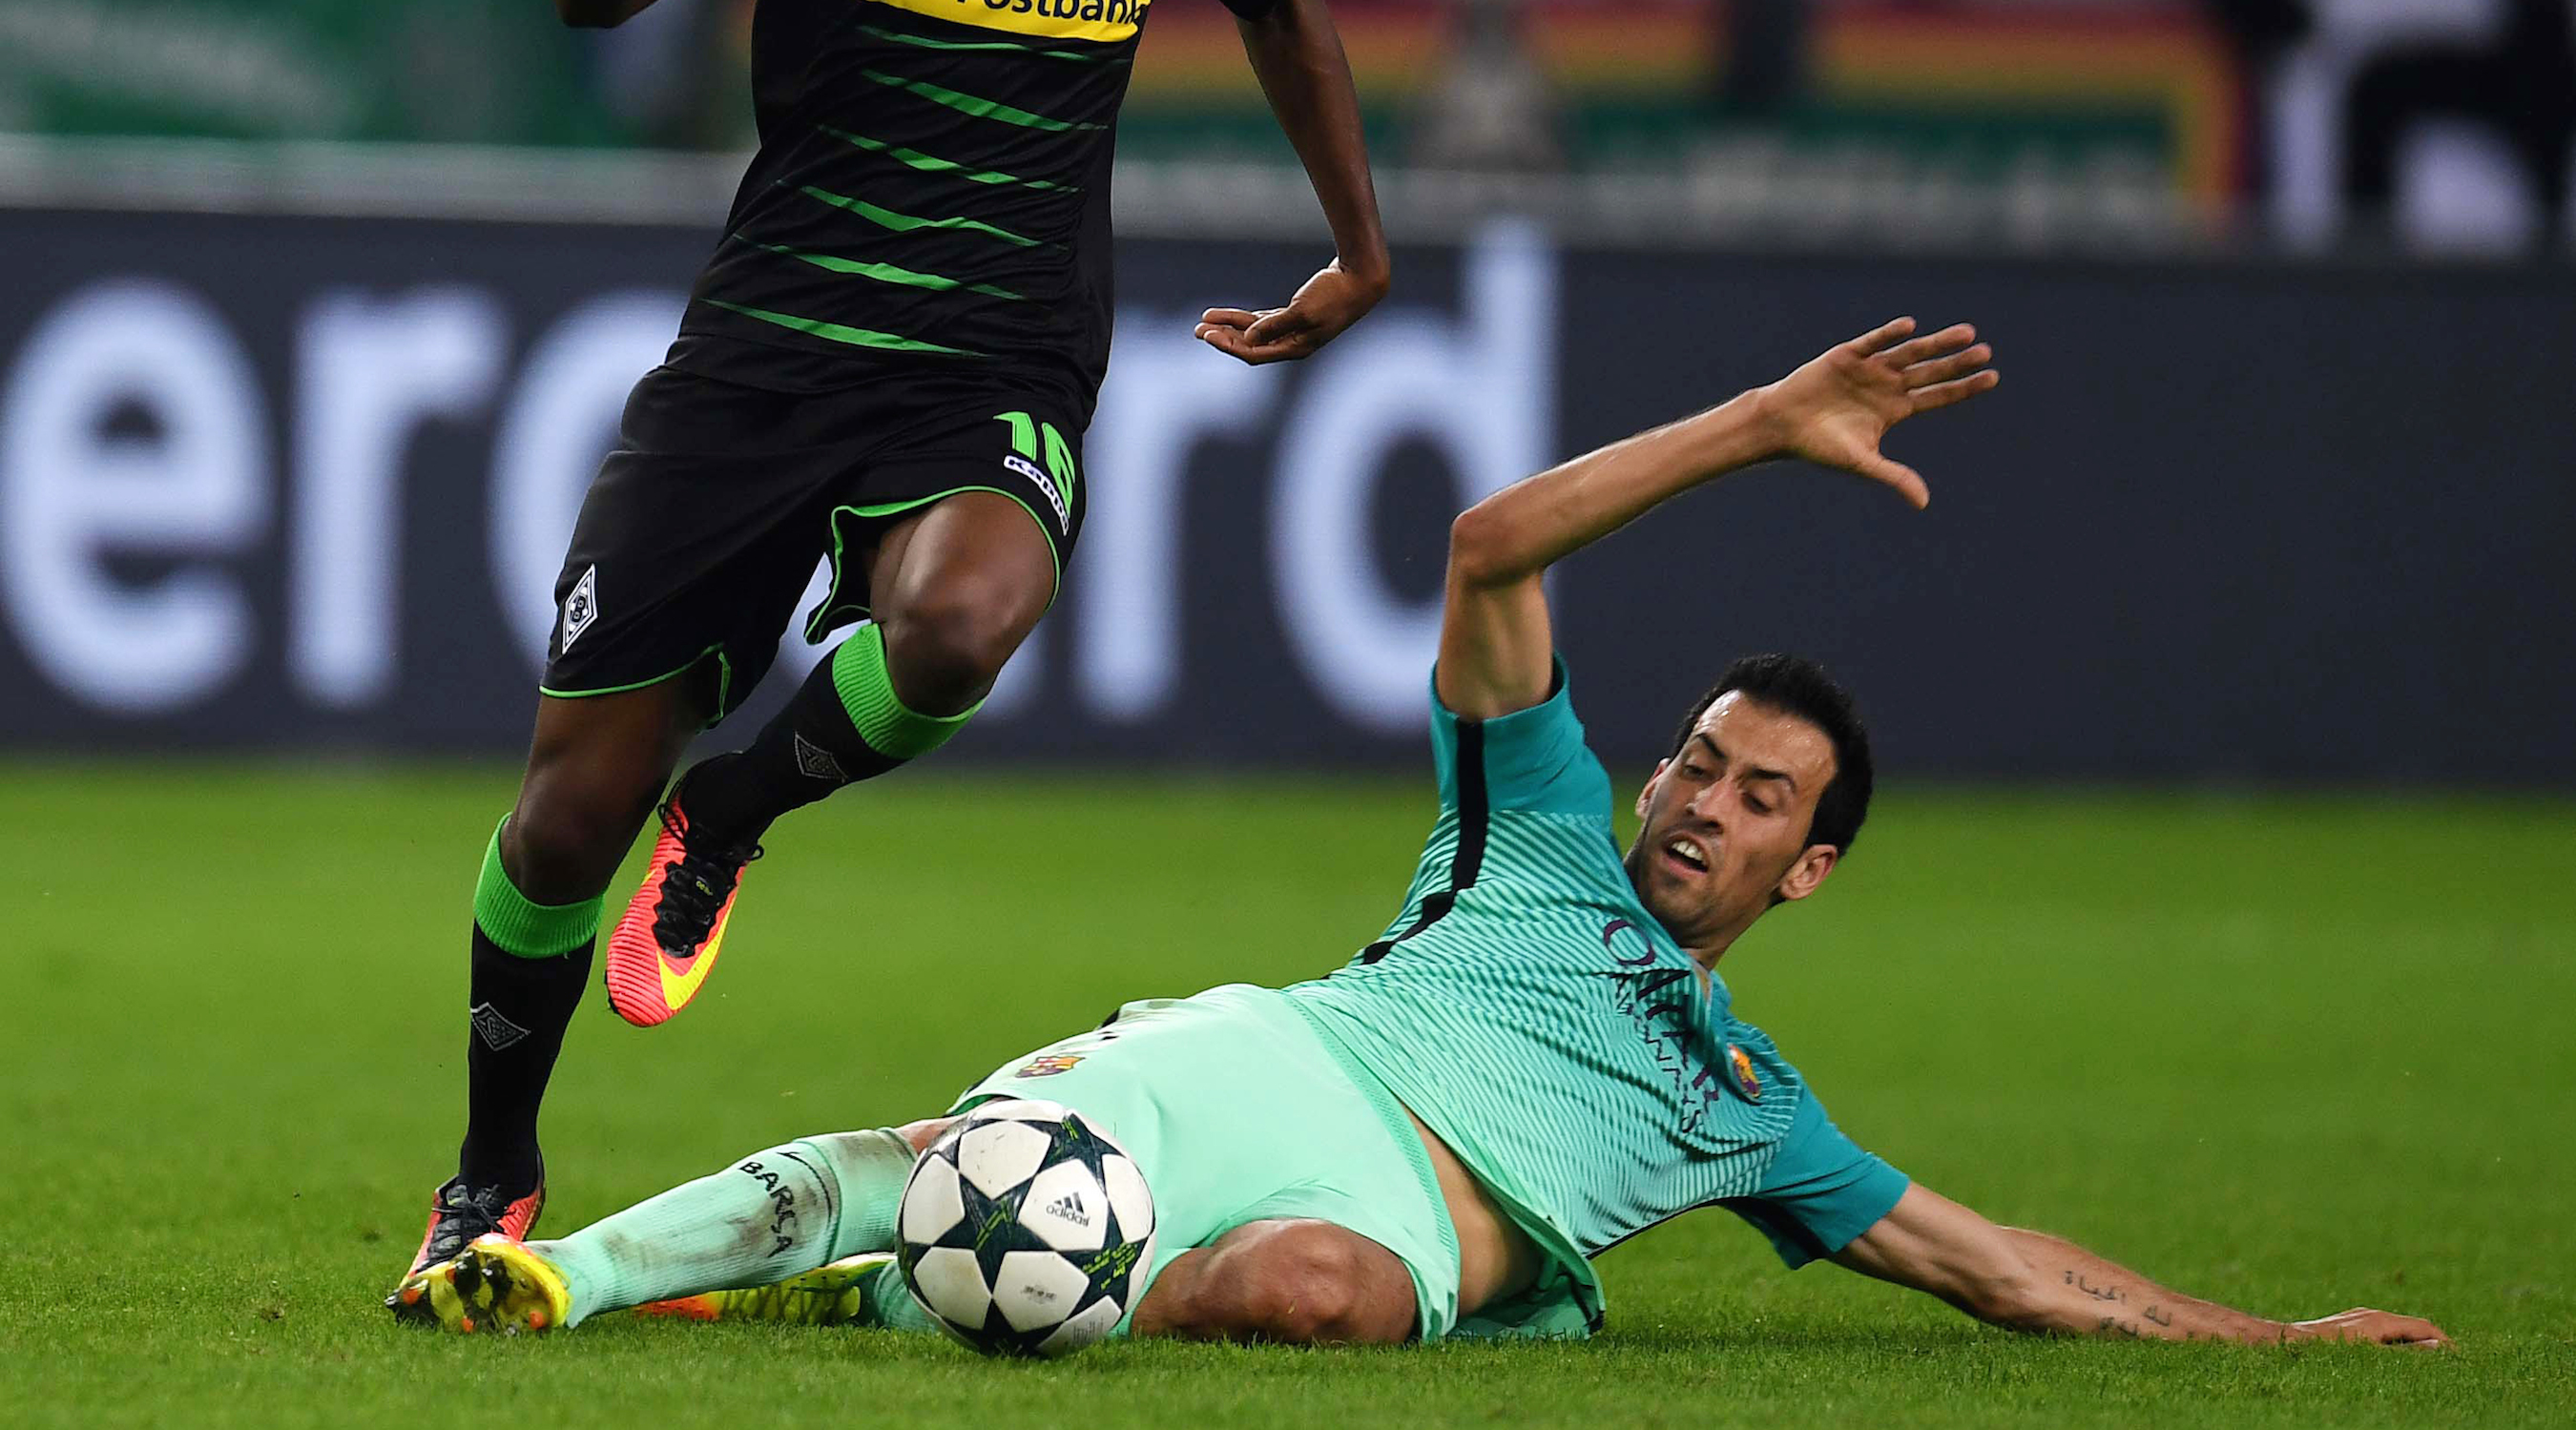 Moenchengladbach's Guinean midfielder Ibrahima Traore and Barcelona's midfielder Sergio Busquets vie for the ball during the UEFA Champions League first-leg group C football match between Borussia Moenchengladbach and FC Barcelona at the Borussia Park in Moenchengladbach, western Germany on September 28, 2016. / AFP / PATRIK STOLLARZ (Photo credit should read PATRIK STOLLARZ/AFP/Getty Images)